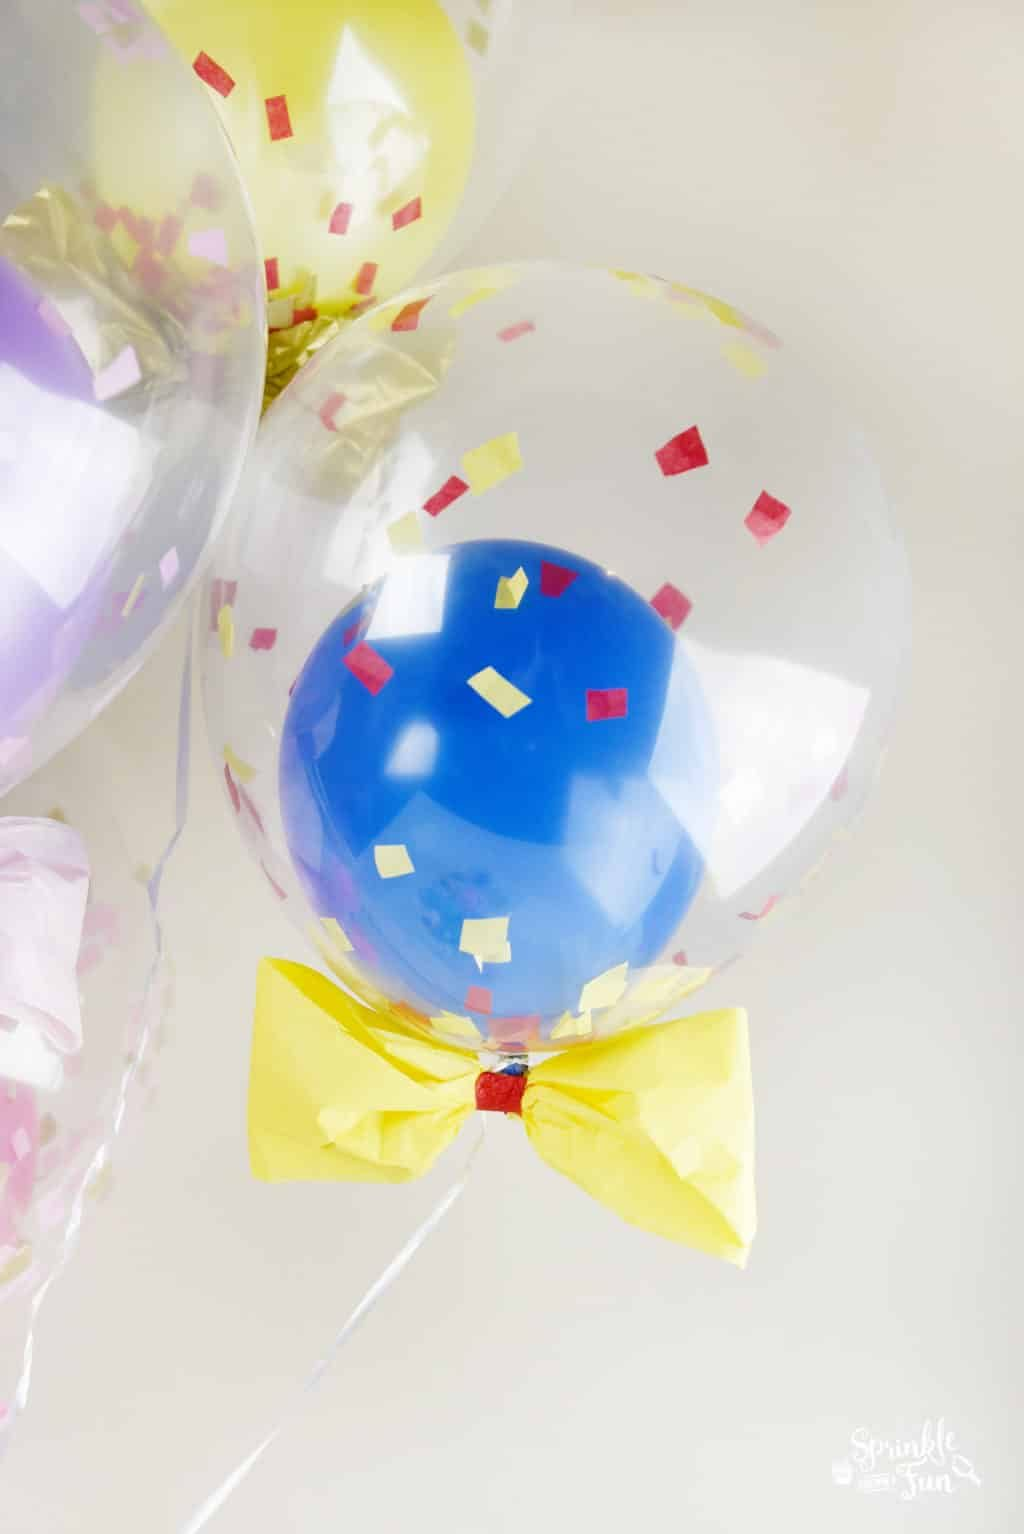 Snow White Balloon DIY